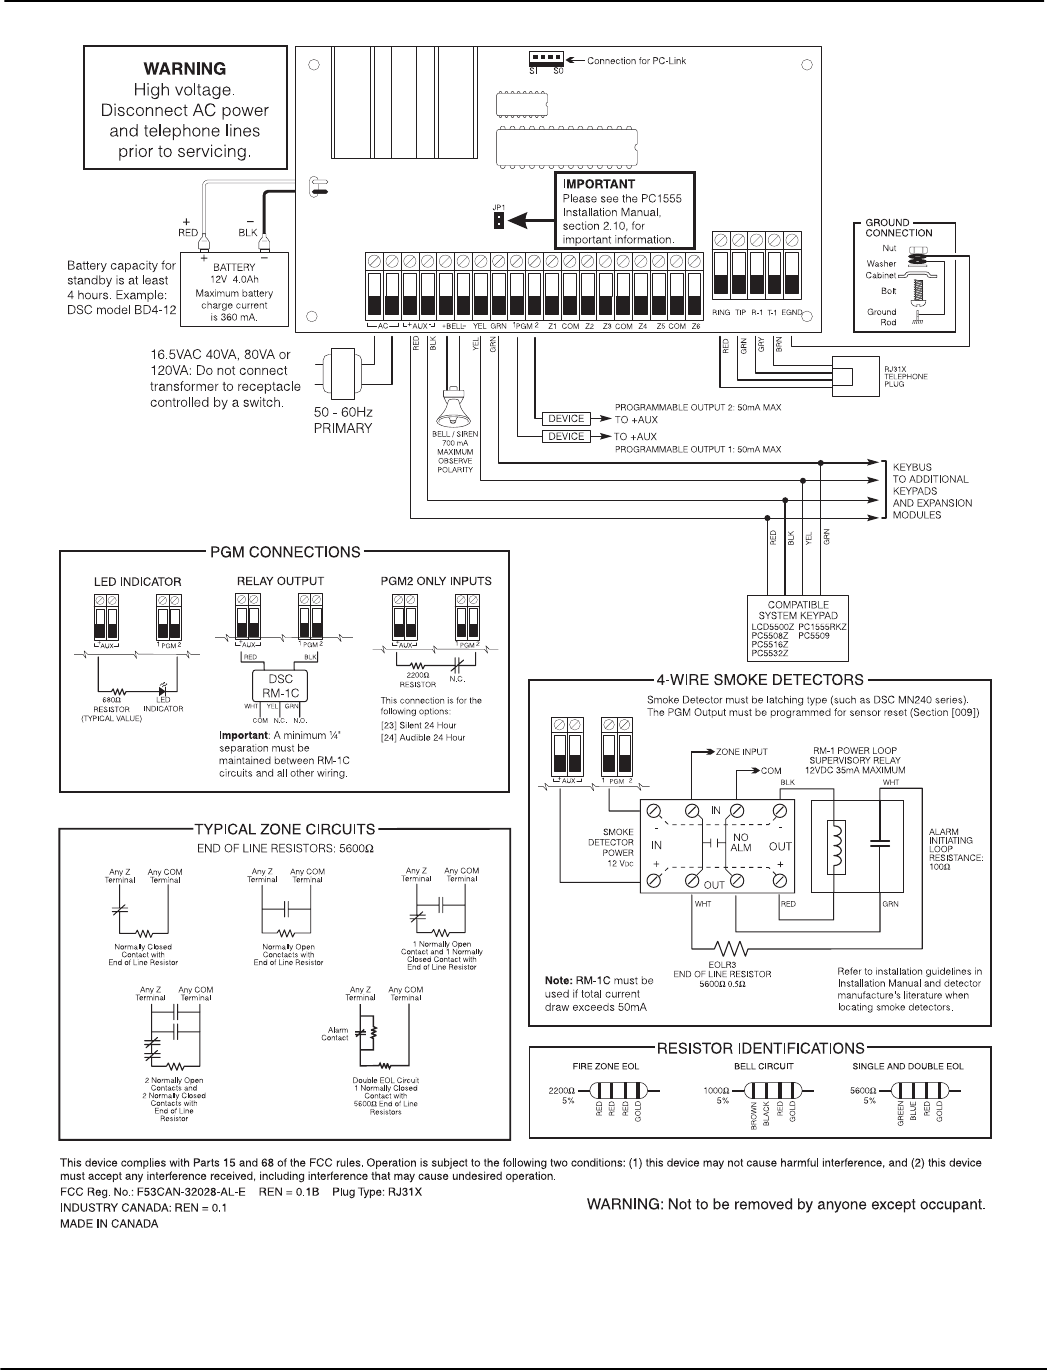 4 Wire Smoke Detector Wiring Diagram from static-resources.imageservice.cloud